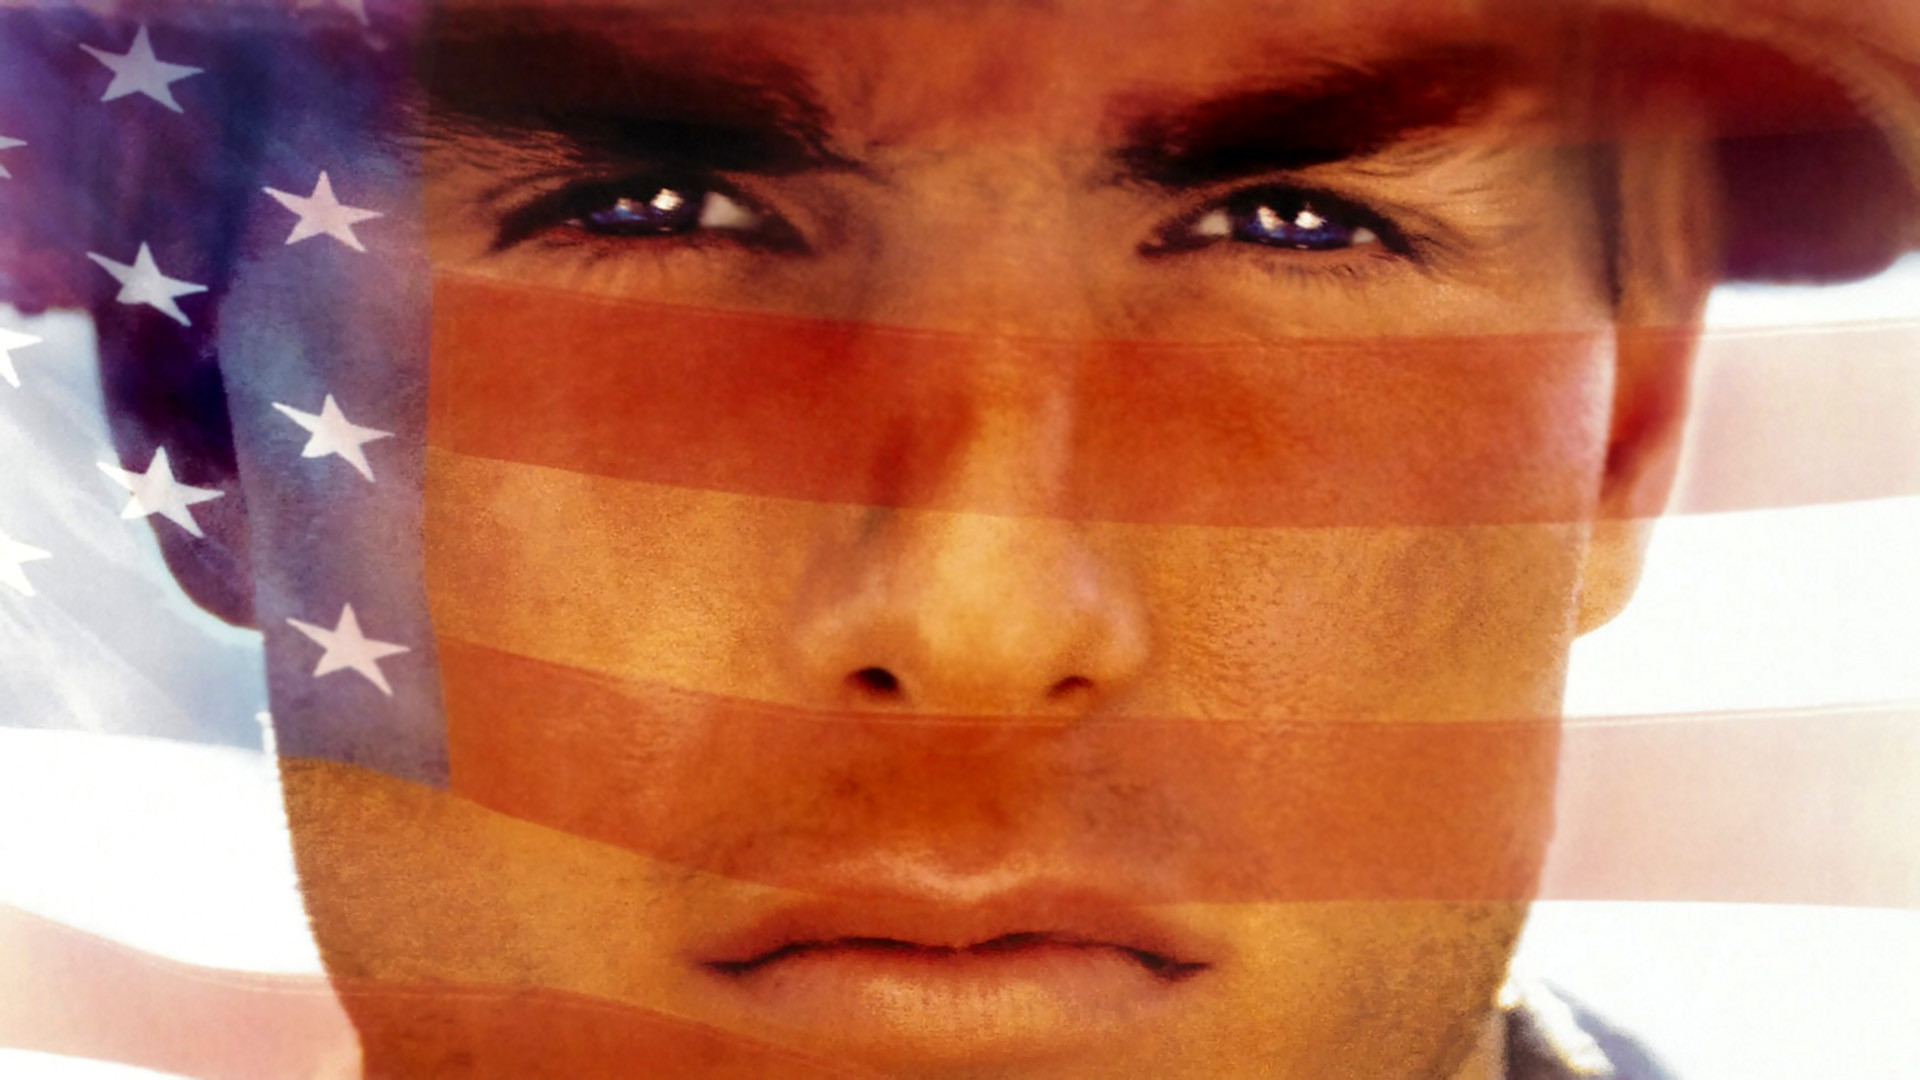 Tom Cruise in Born on the 4th of July